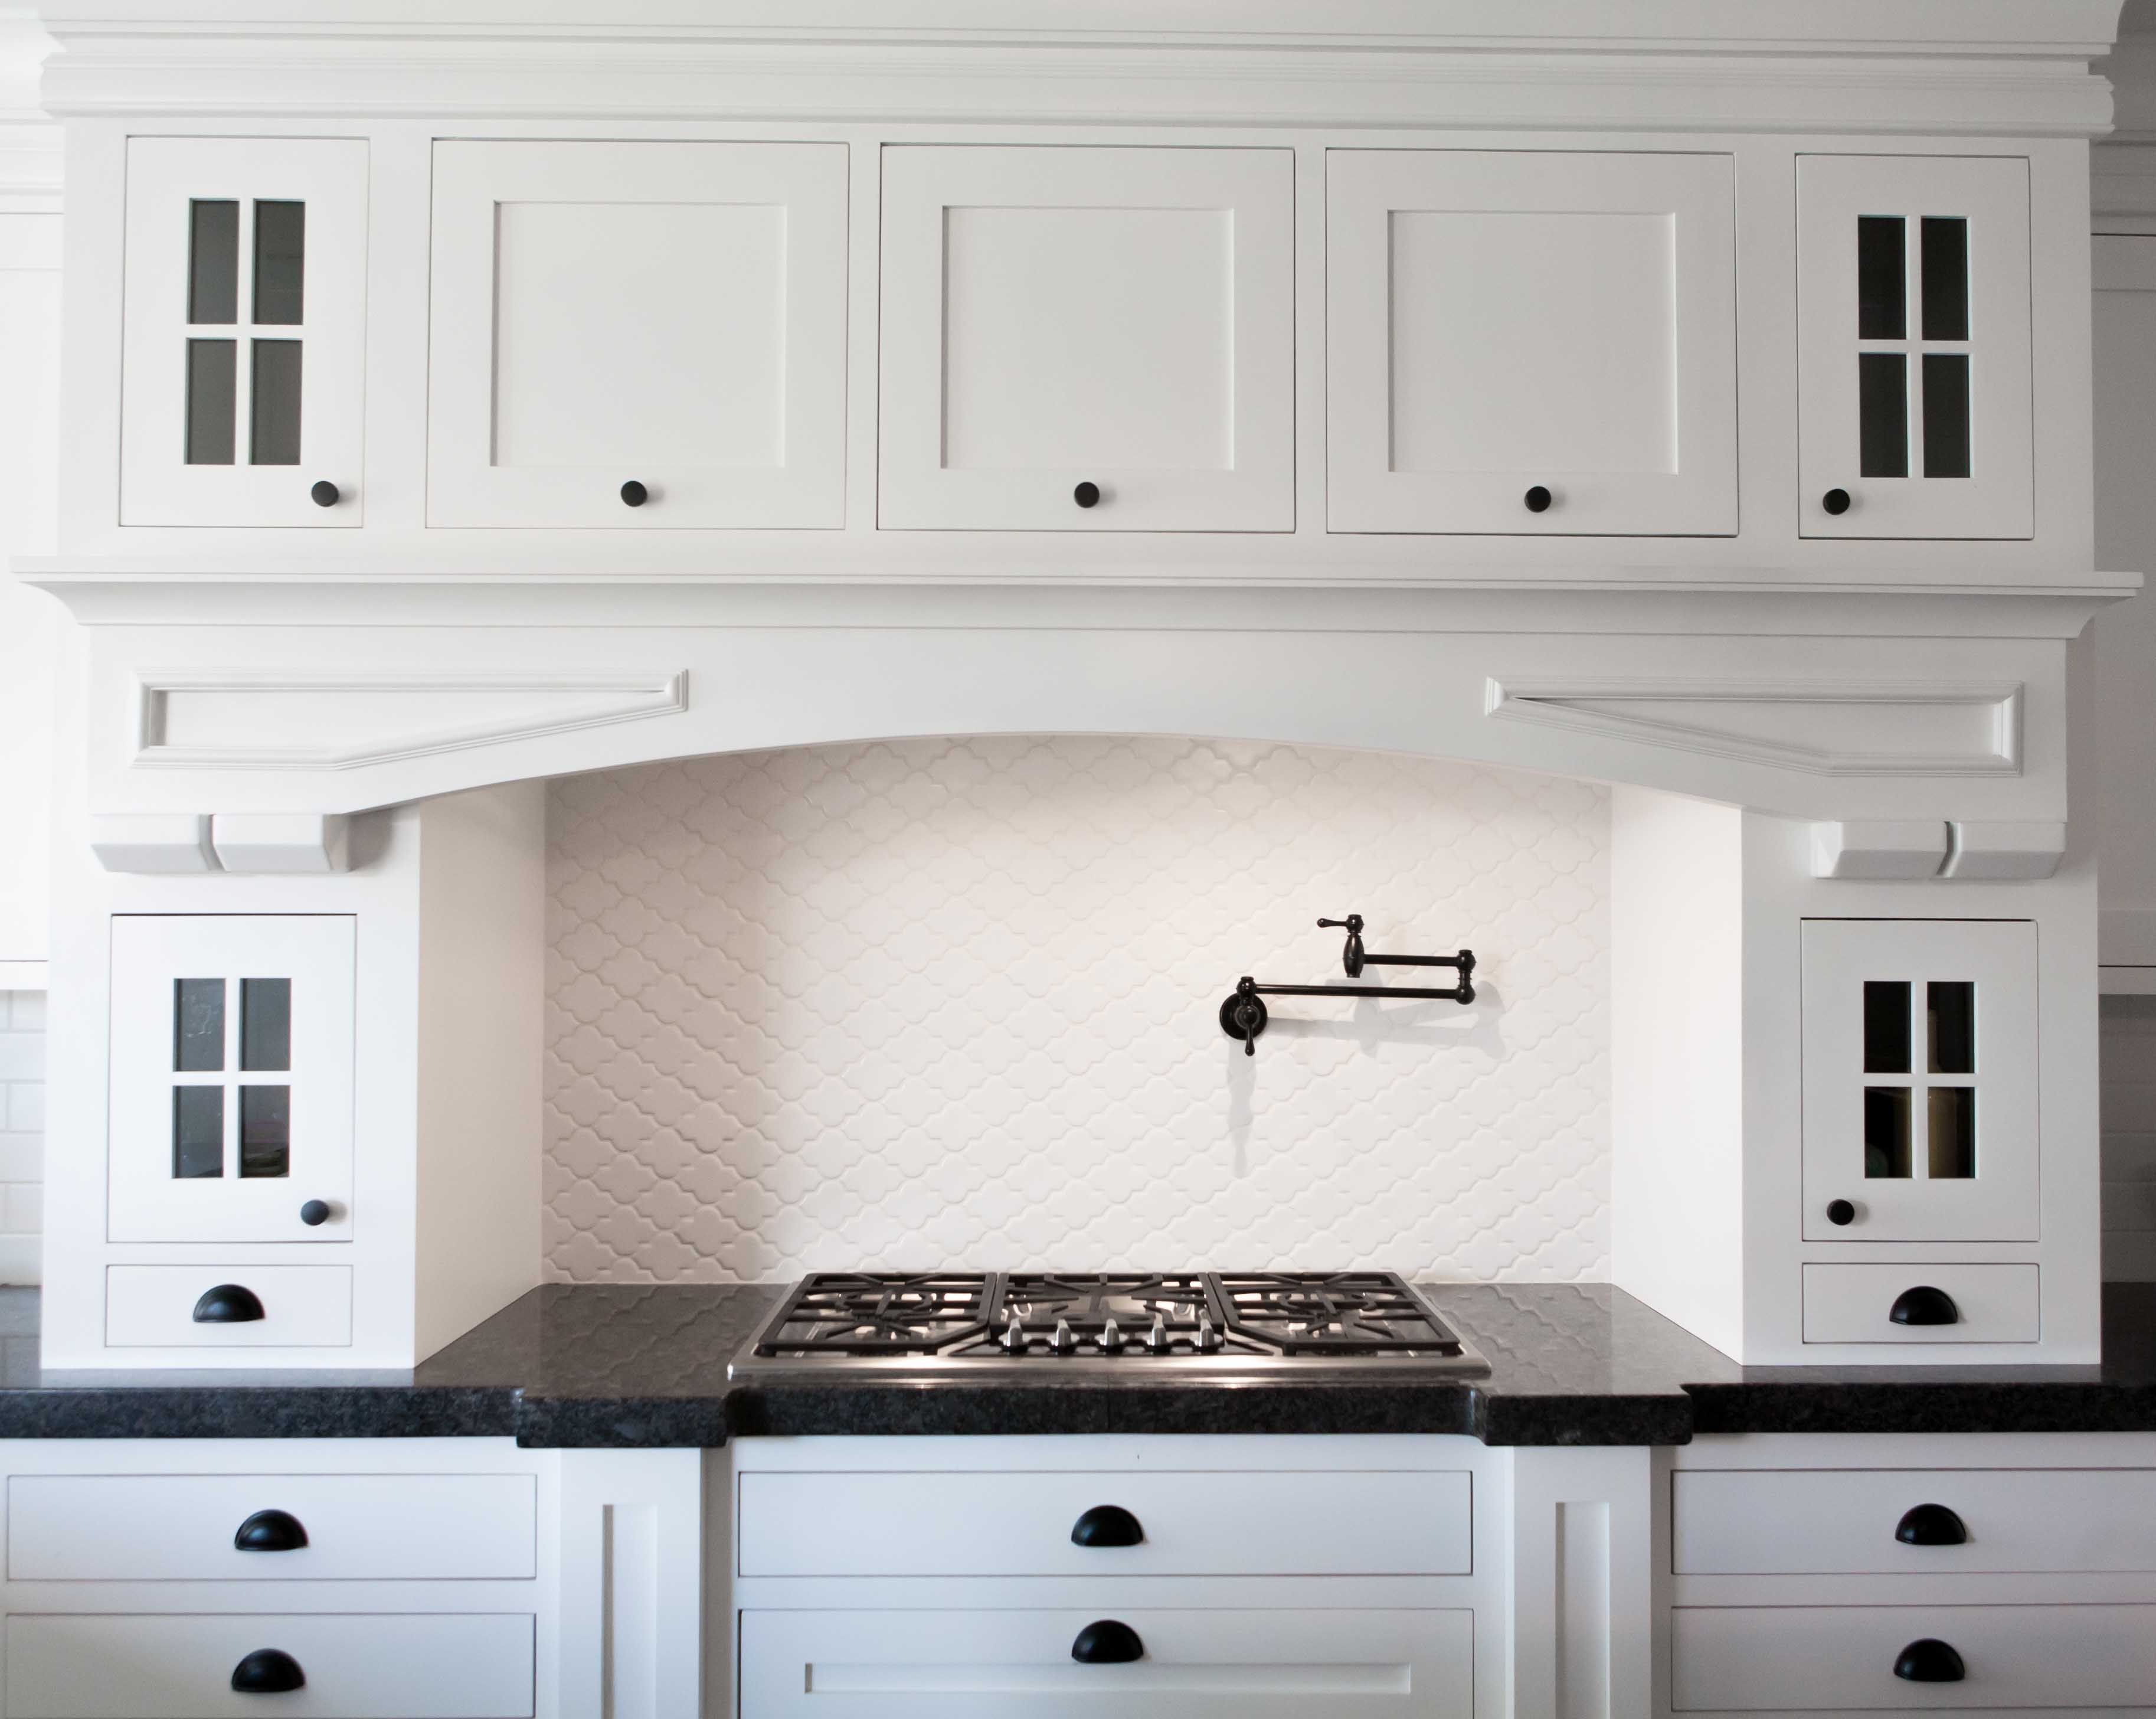 Incroyable The Cabinet Fronts Are Called Shaker Style, Which Is A Flat Panel Cabinet.  Description